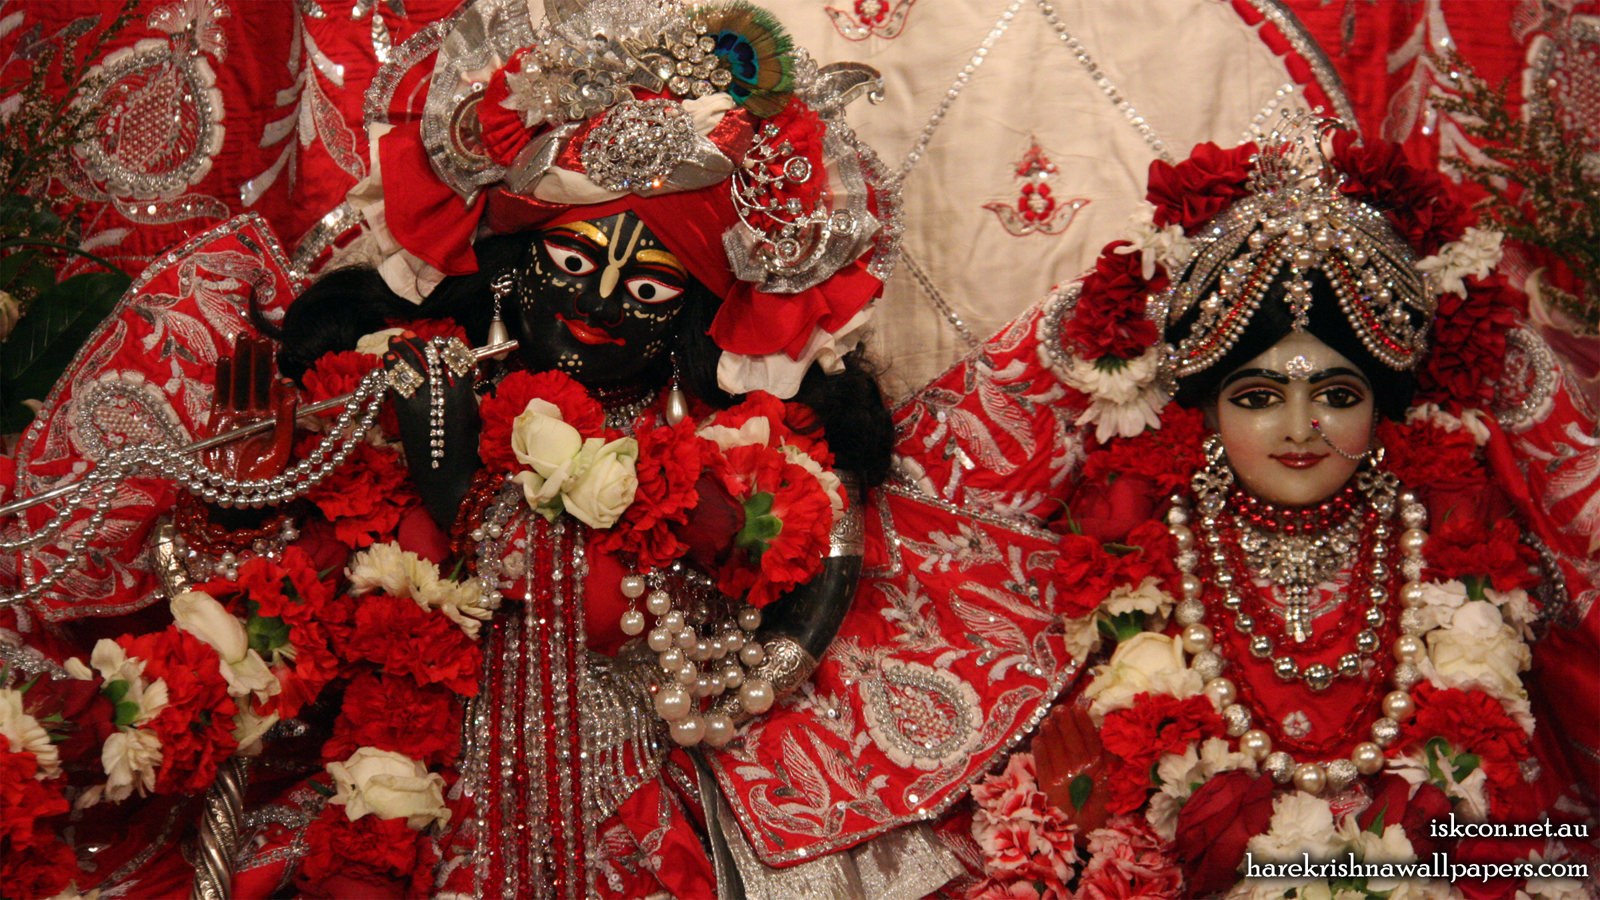 Sri Sri Radha Vallabh Close up Wallpaper (005) Size 1600x900 Download